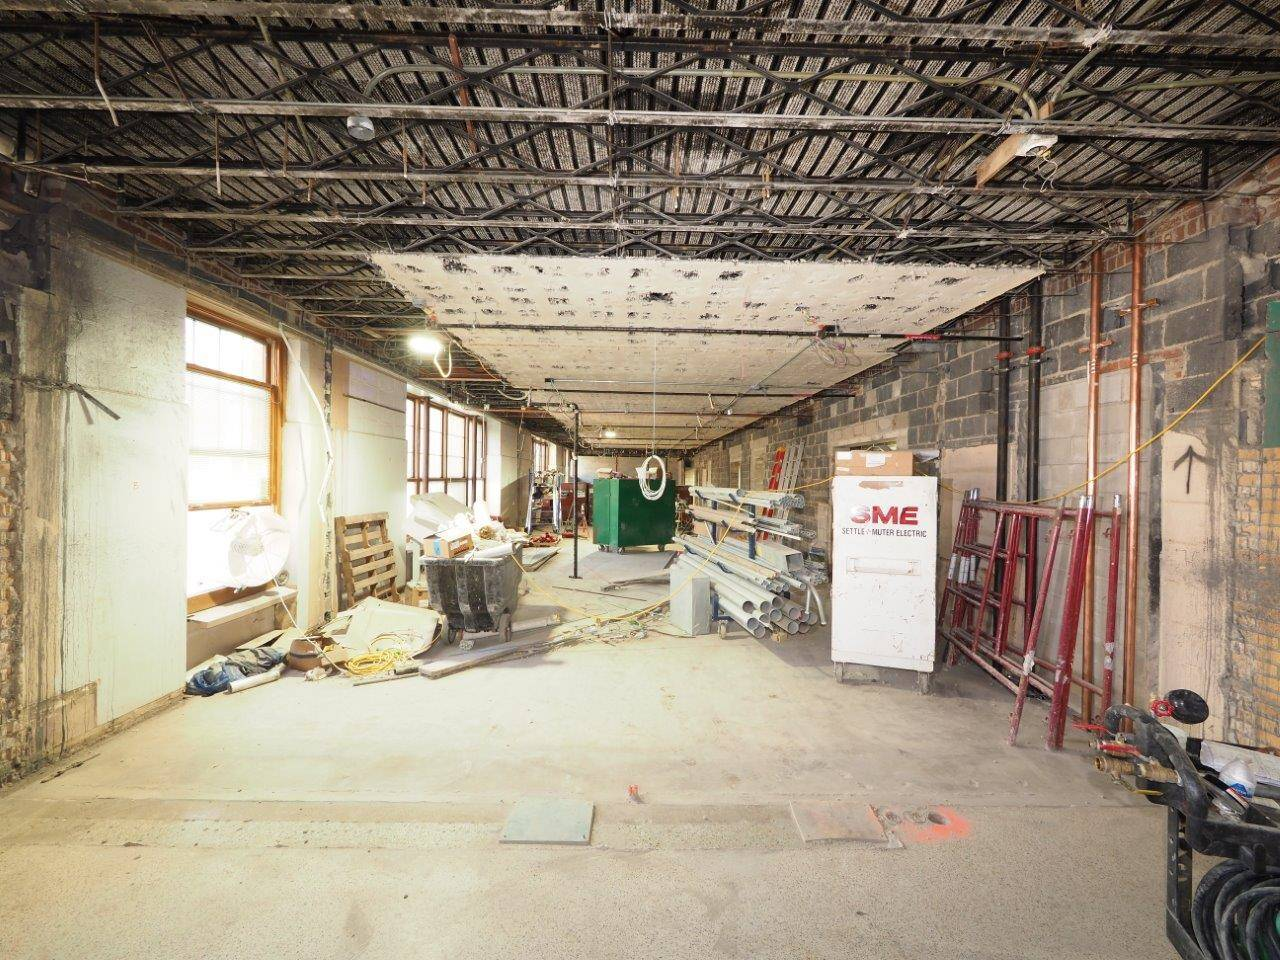 Demolition work for the Barrington Elementary School renovation project